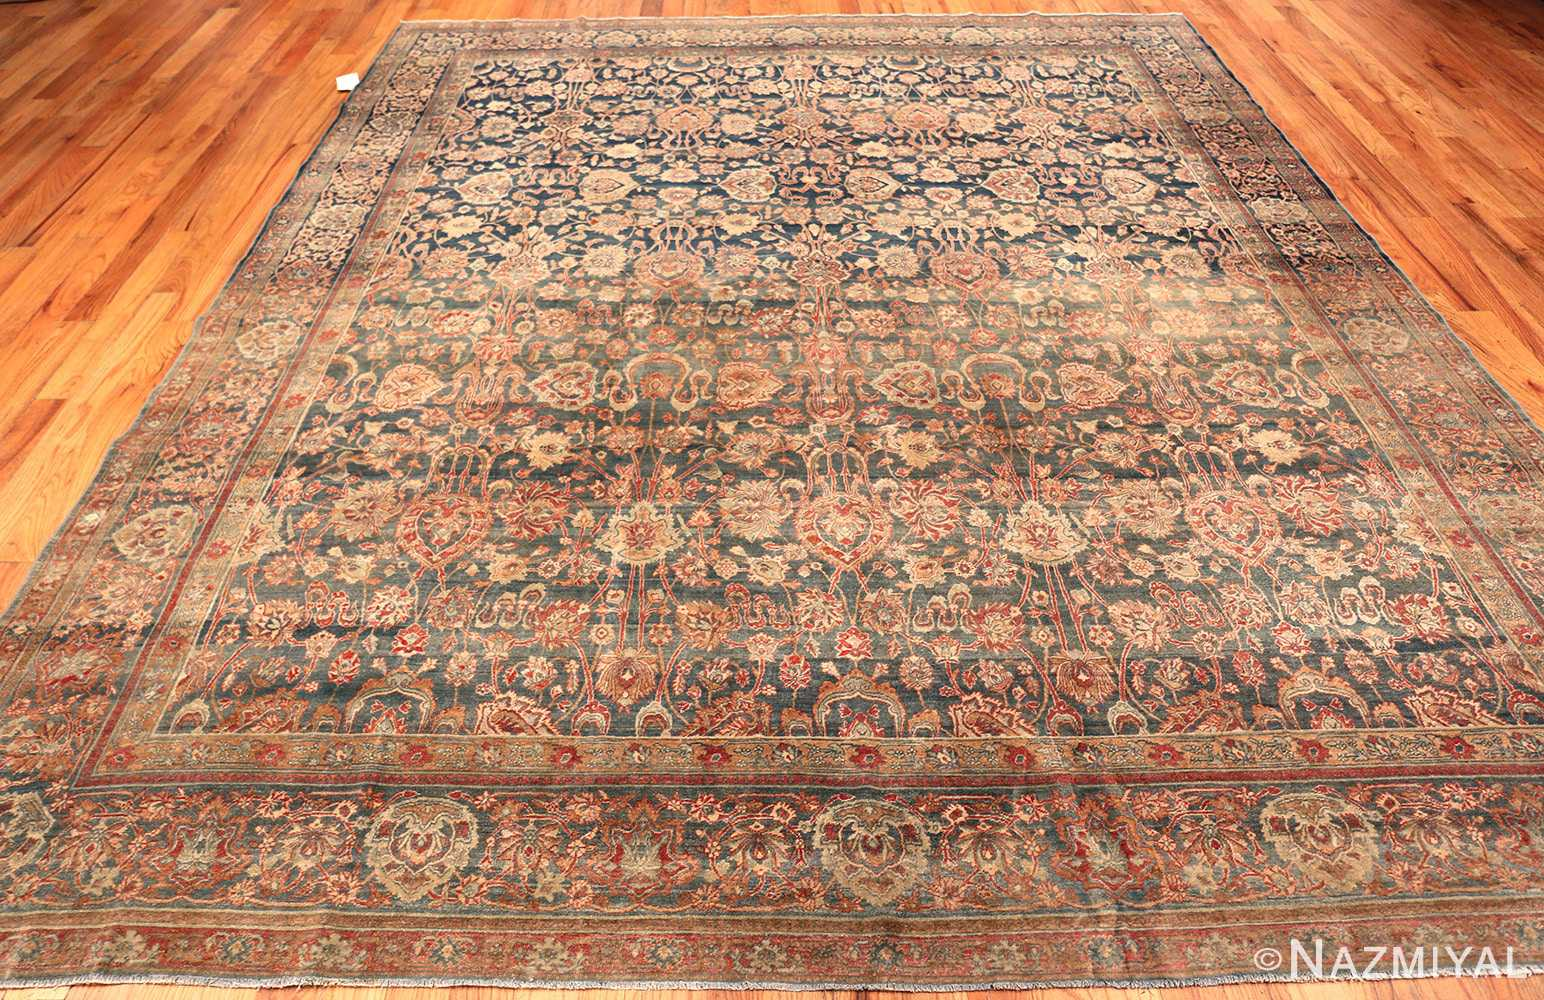 Blue Abrash Antique Persian Kerman Rug #49697 - Nazmiyal